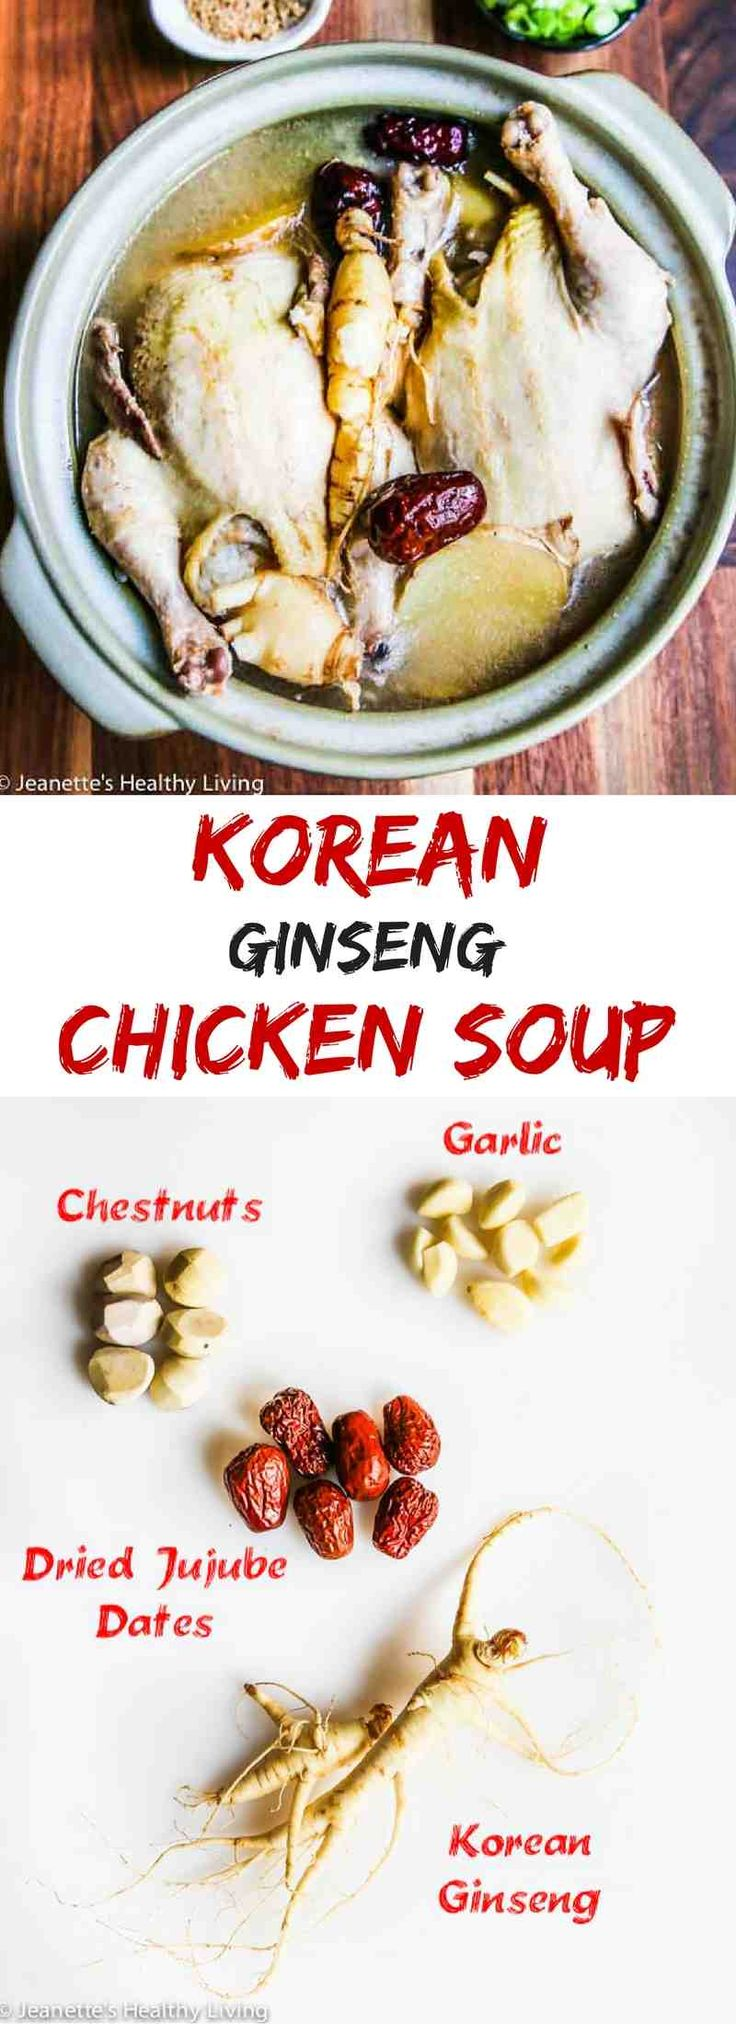 Korean Ginseng Chicken Soup - a nourishing, rejuvenating chicken soup made with Korean ginseng: